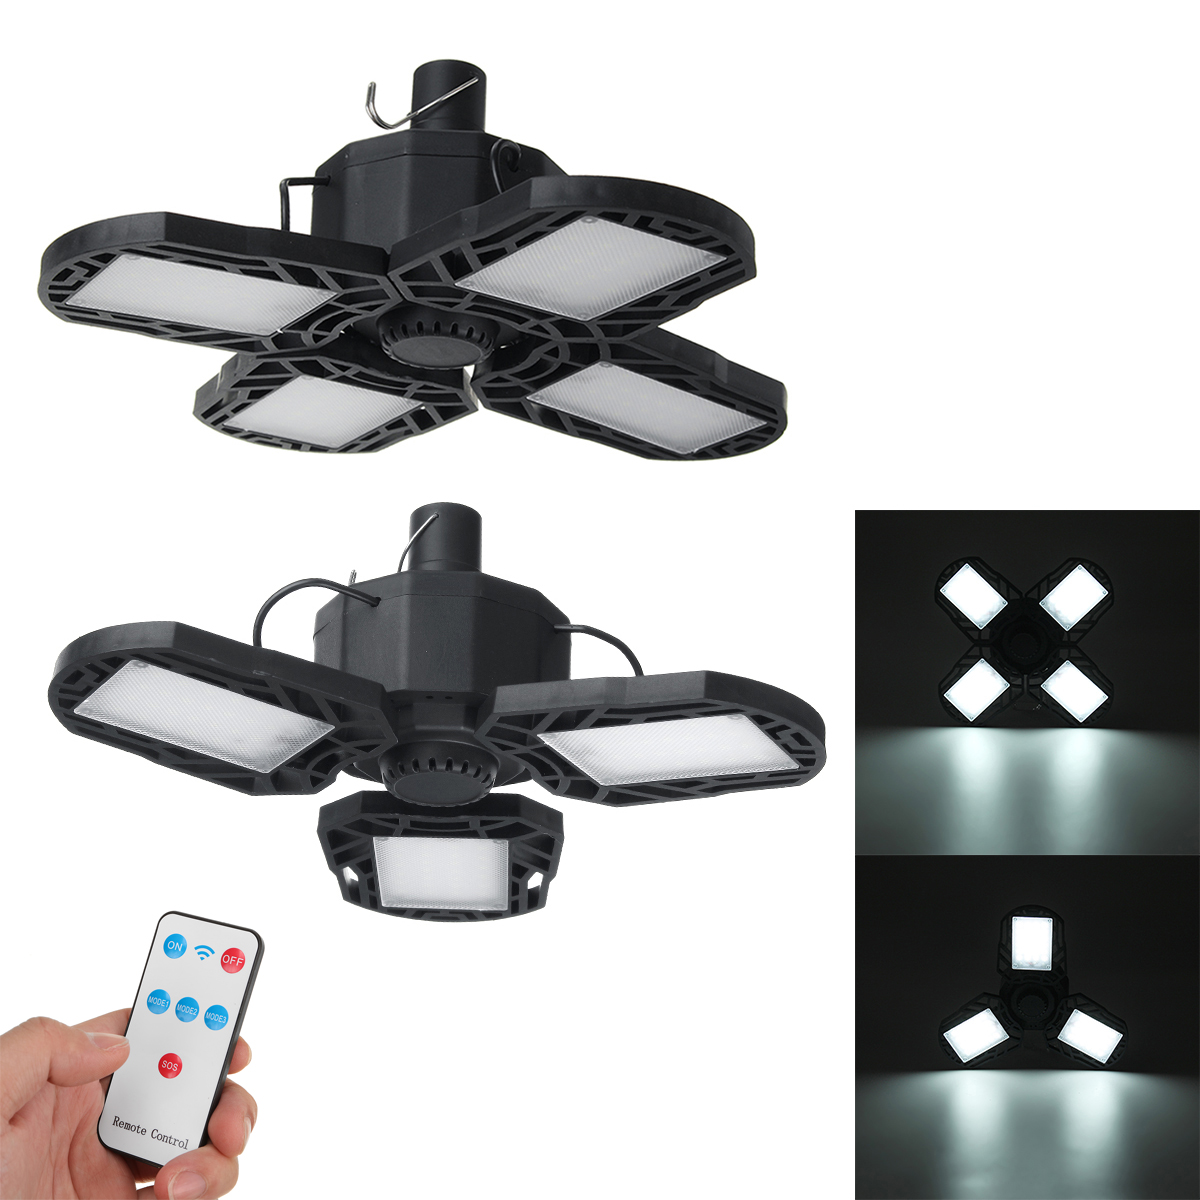 XANES® 120W Remote Control Solar Camping Light 5-Modes USB Charging Waterproof LED Light Outdoor Foldable Emergency Lamp